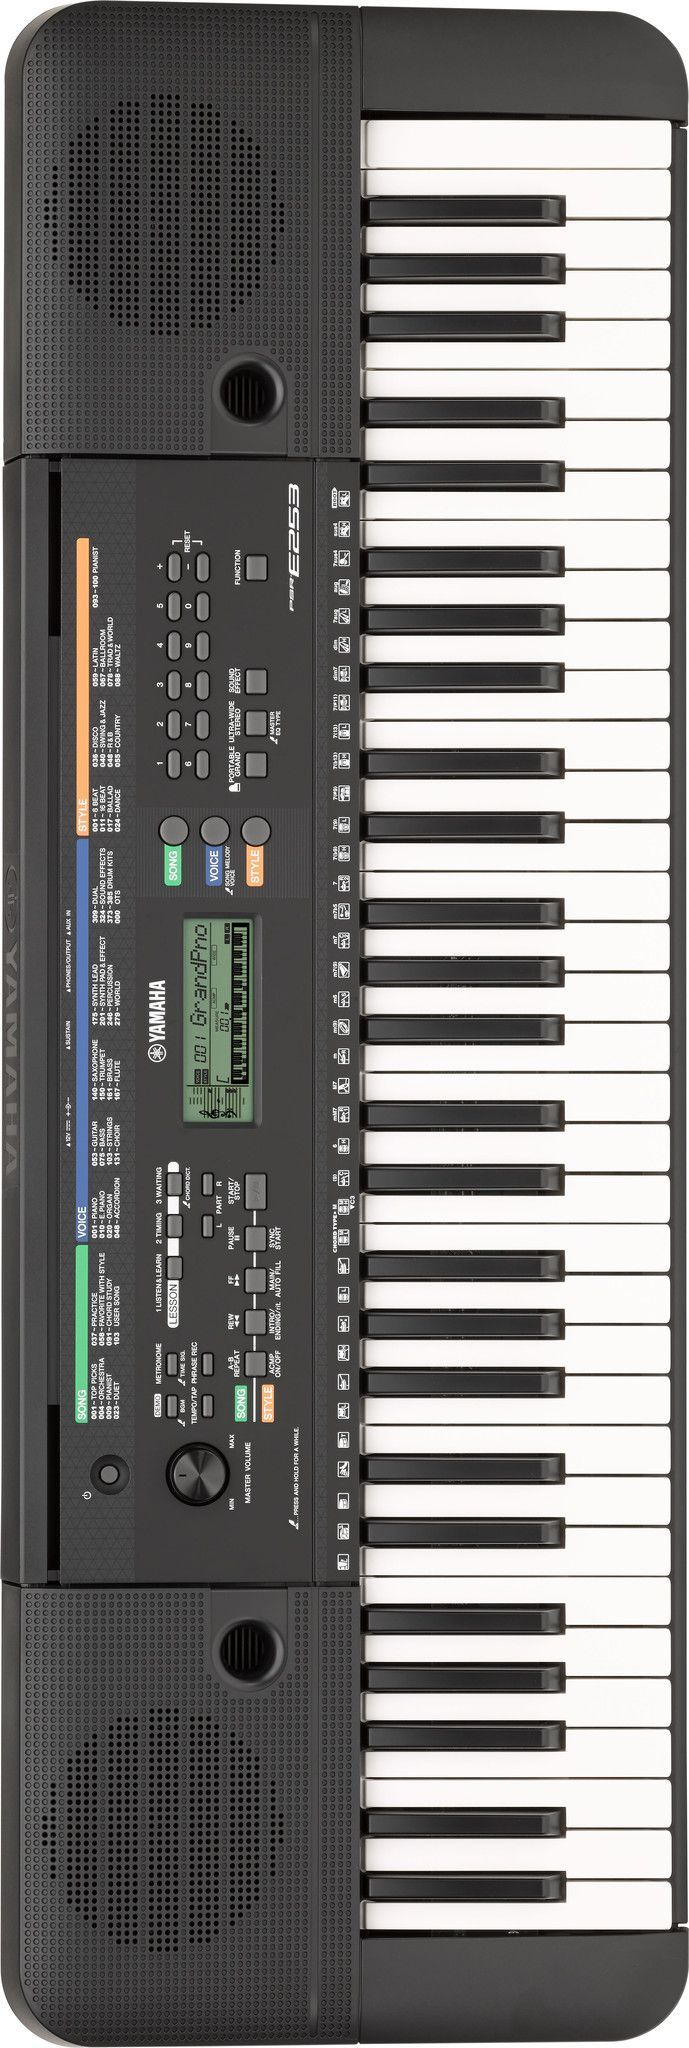 Image Result For Yamaha Keyboard For Beginners